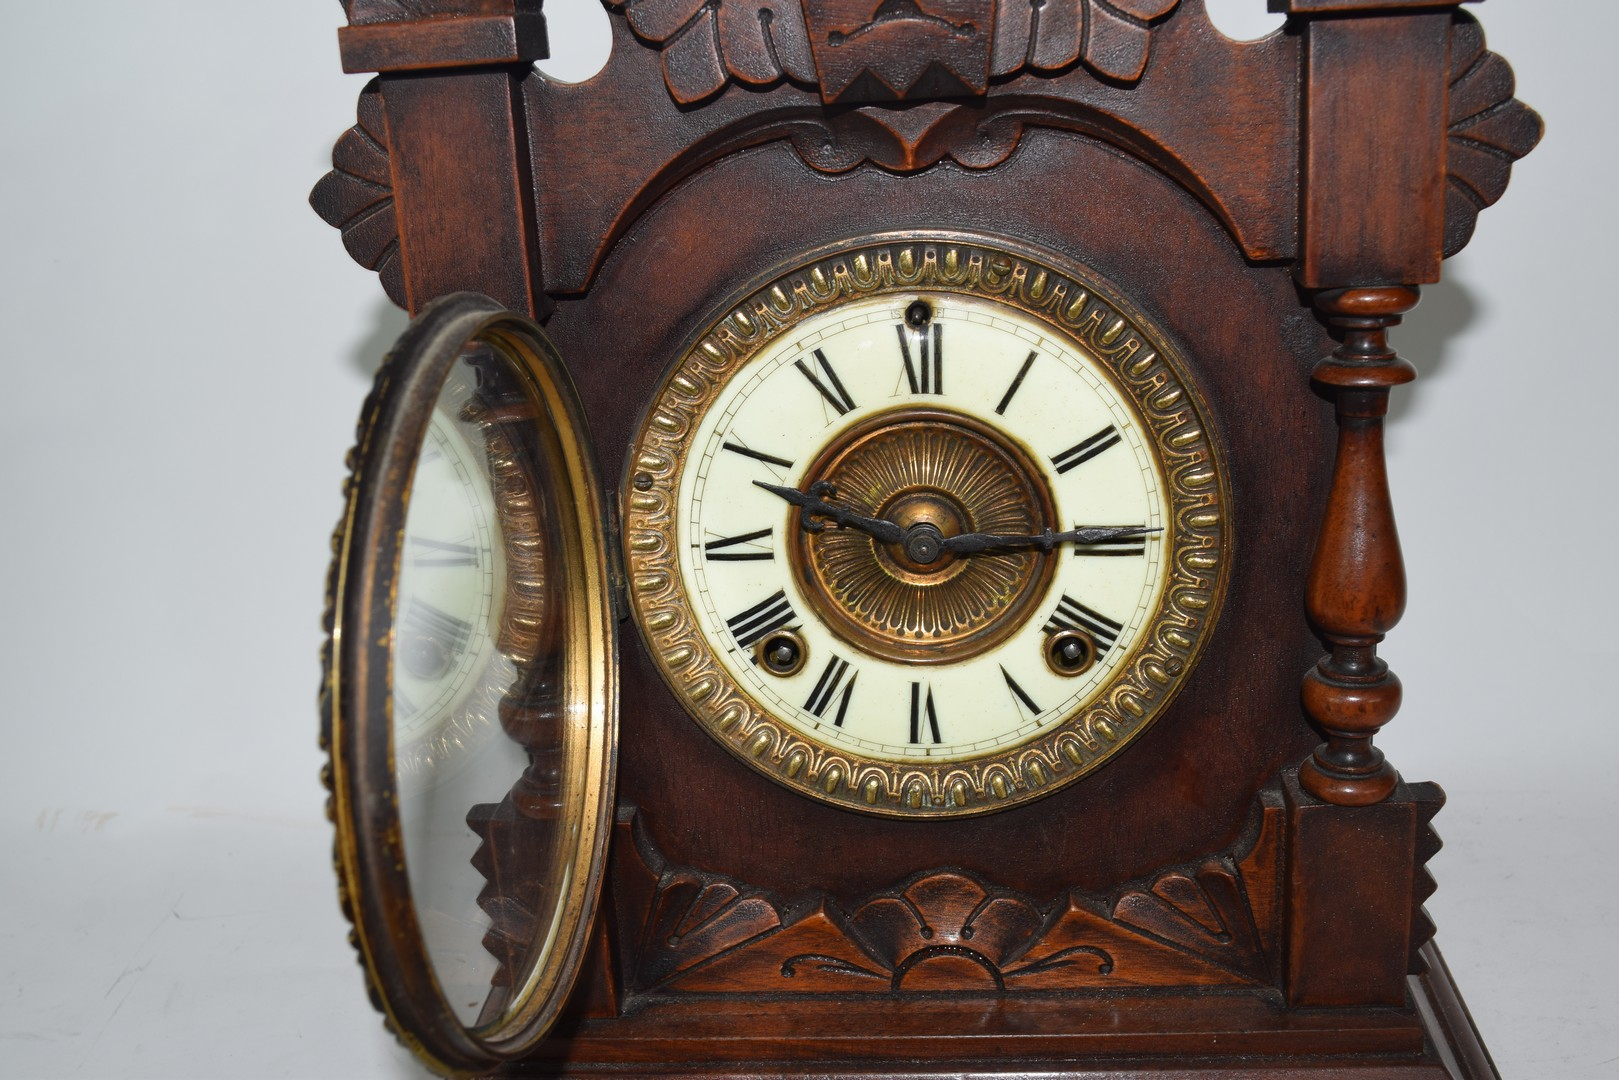 Late 19th century mantel clock by Ansona of New York - Image 6 of 6